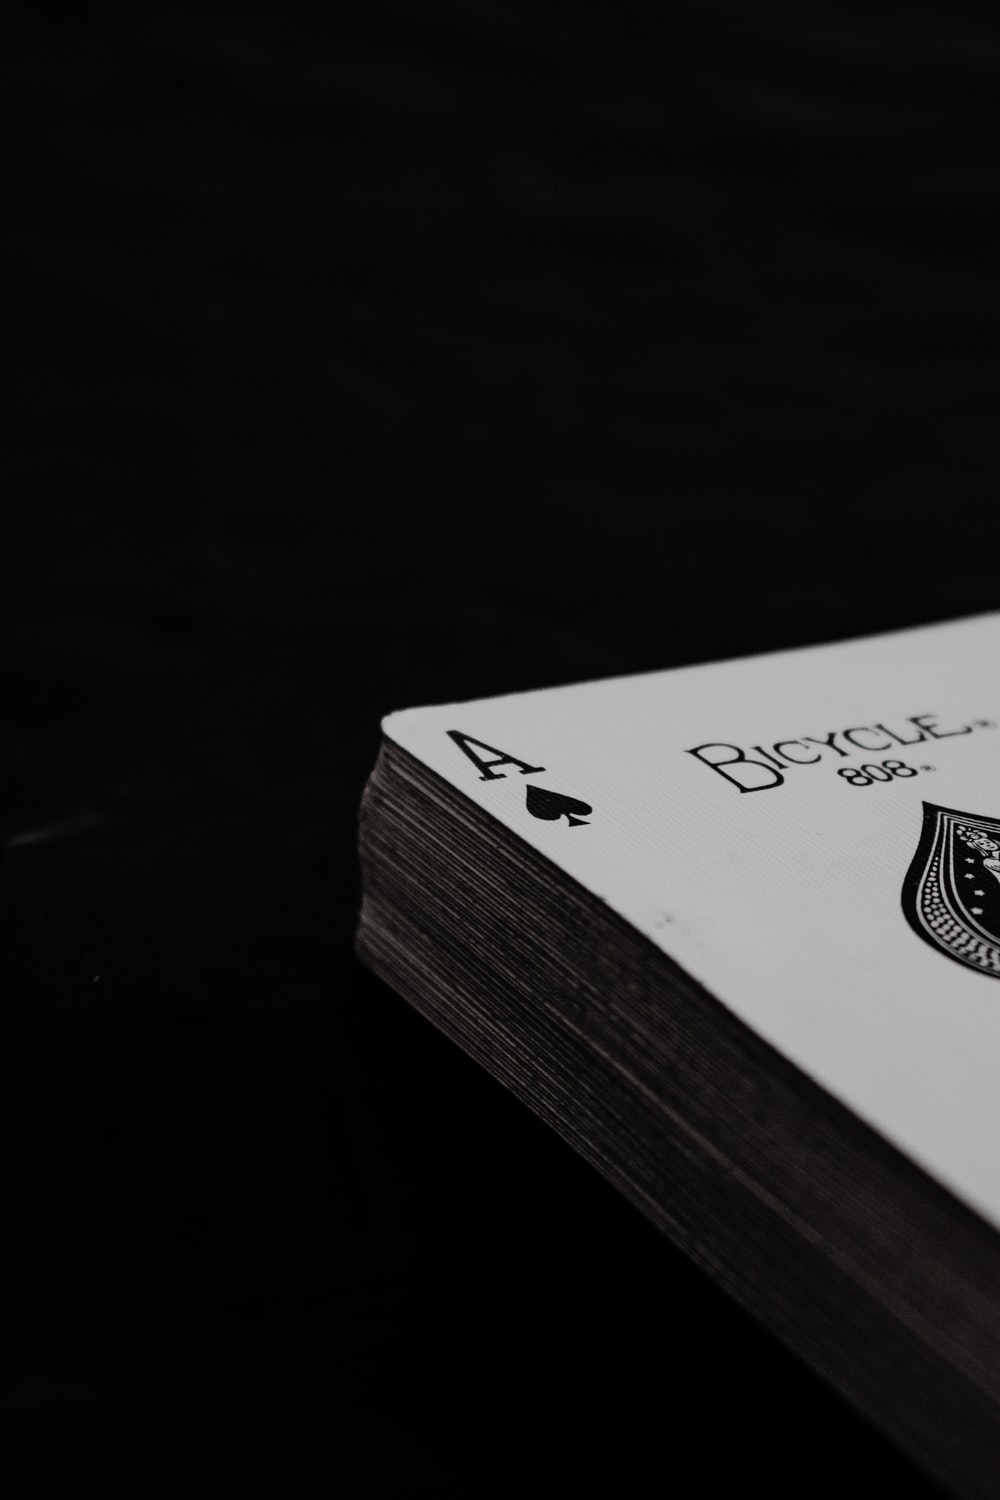 ace of spade playing card